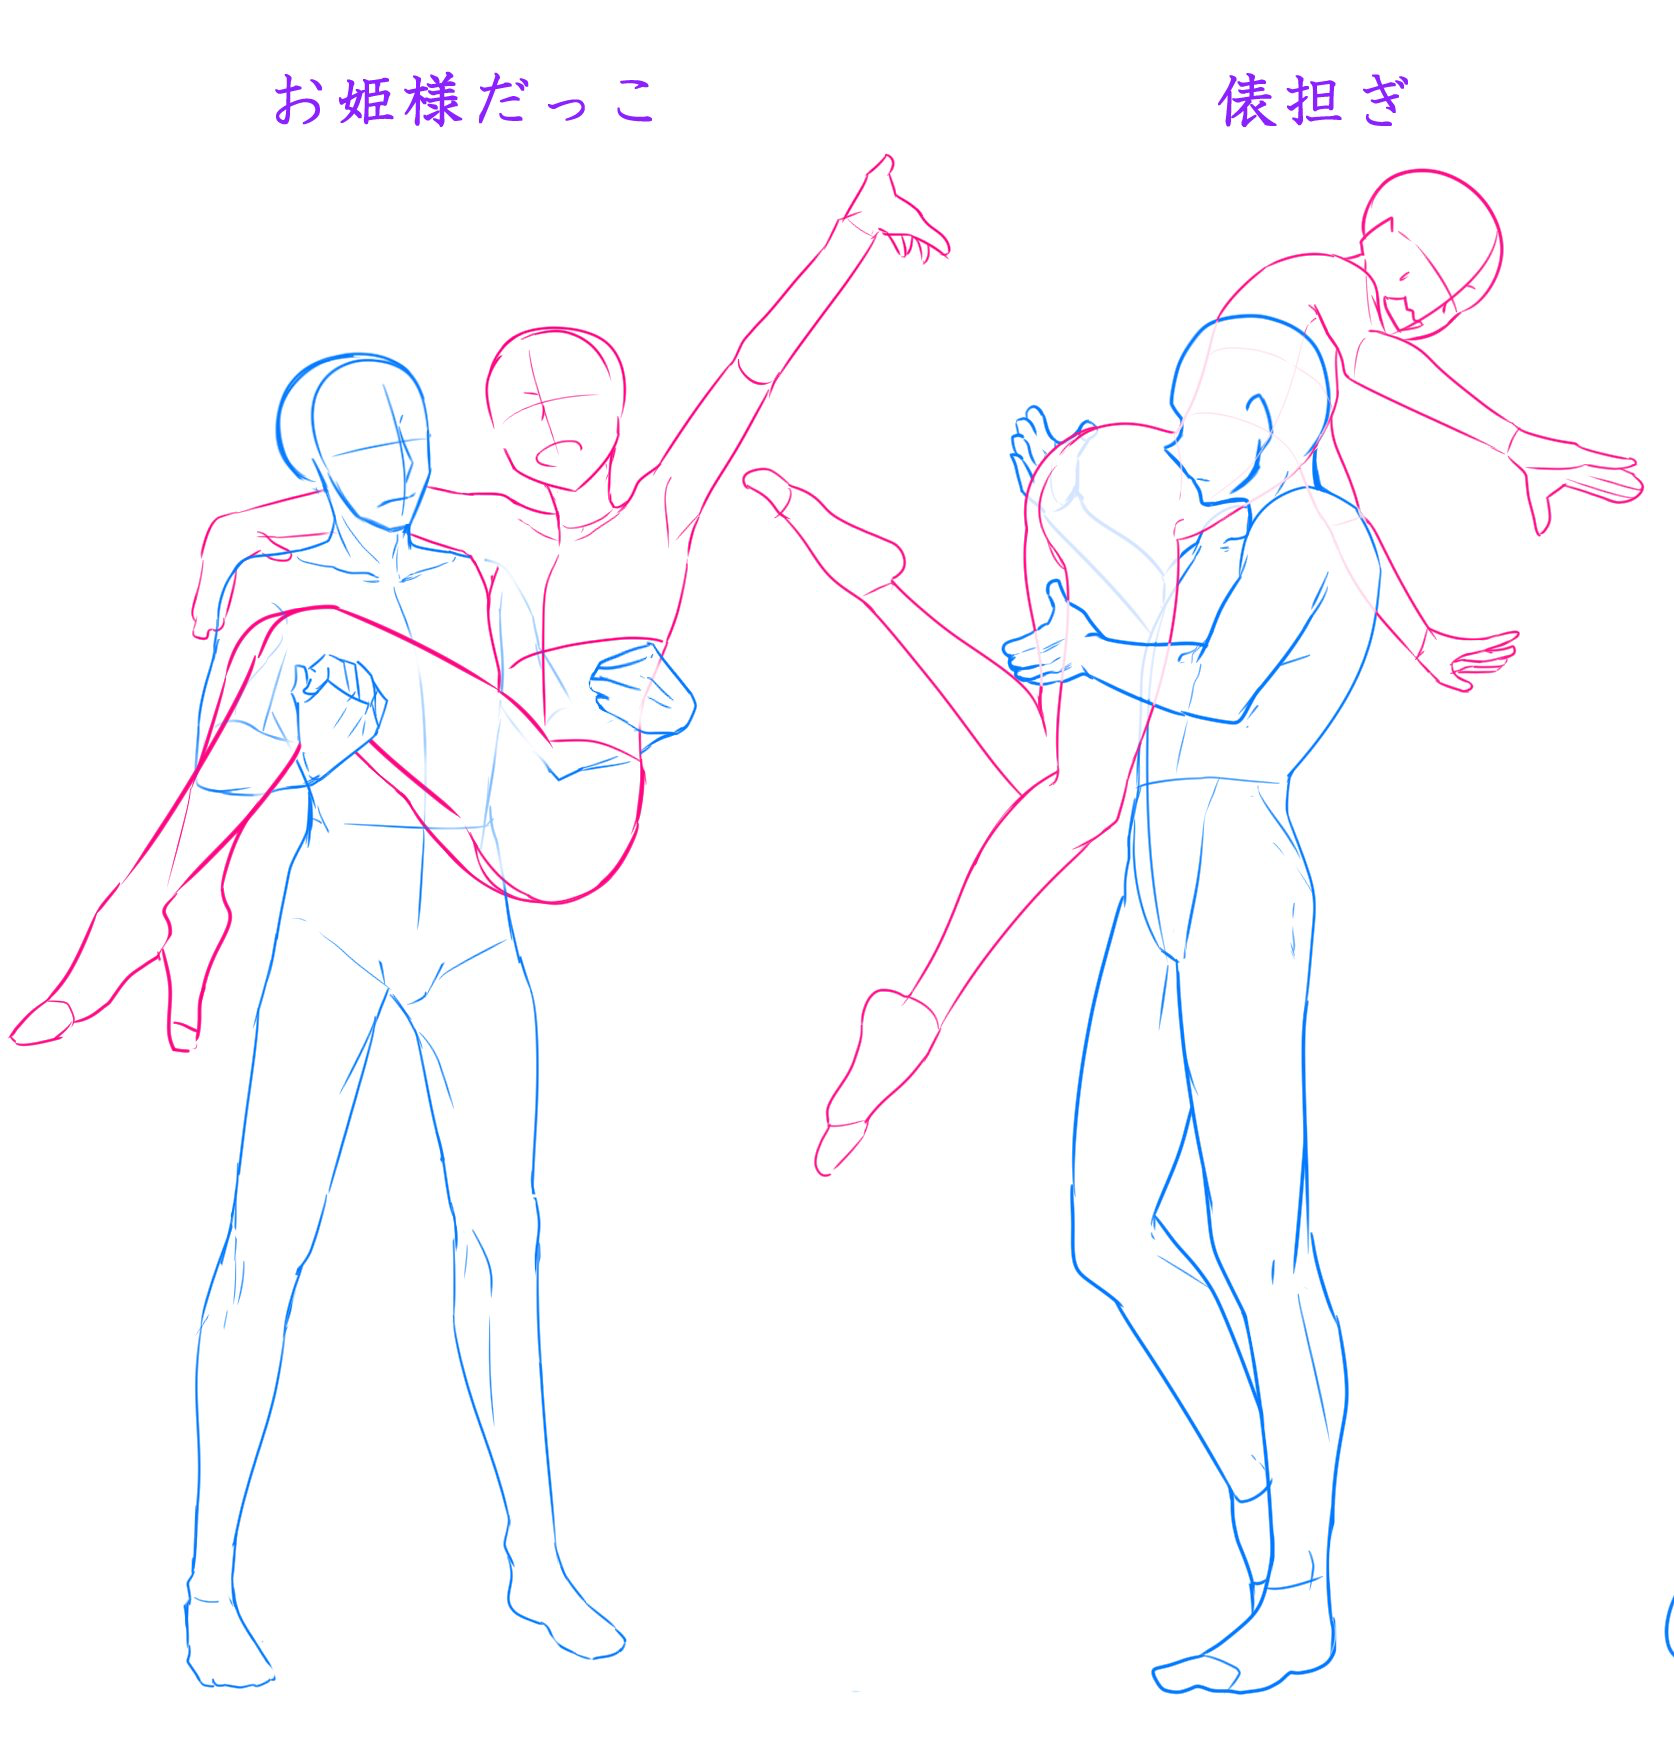 Pin By Luciamina On Drawing References Drawing Reference Poses Art Reference Poses Anime Poses Reference